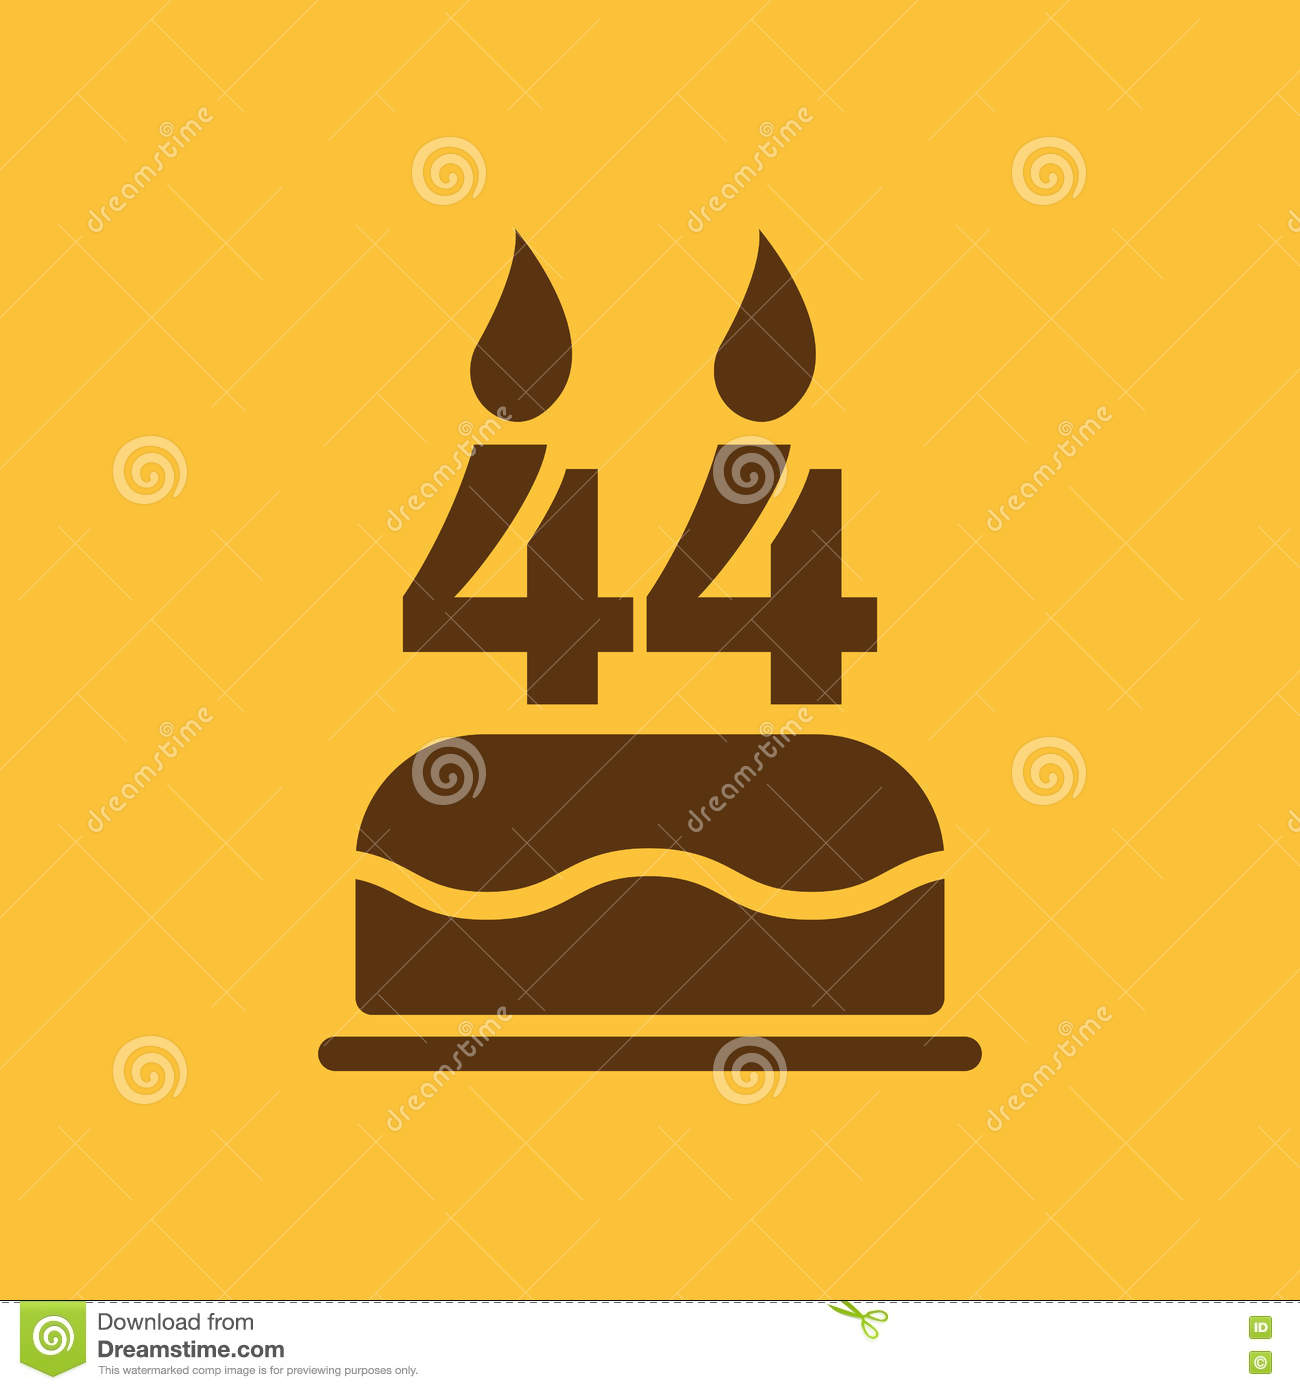 The birthday cake with candles in the form of number 44 icon. Birthday  symbol.